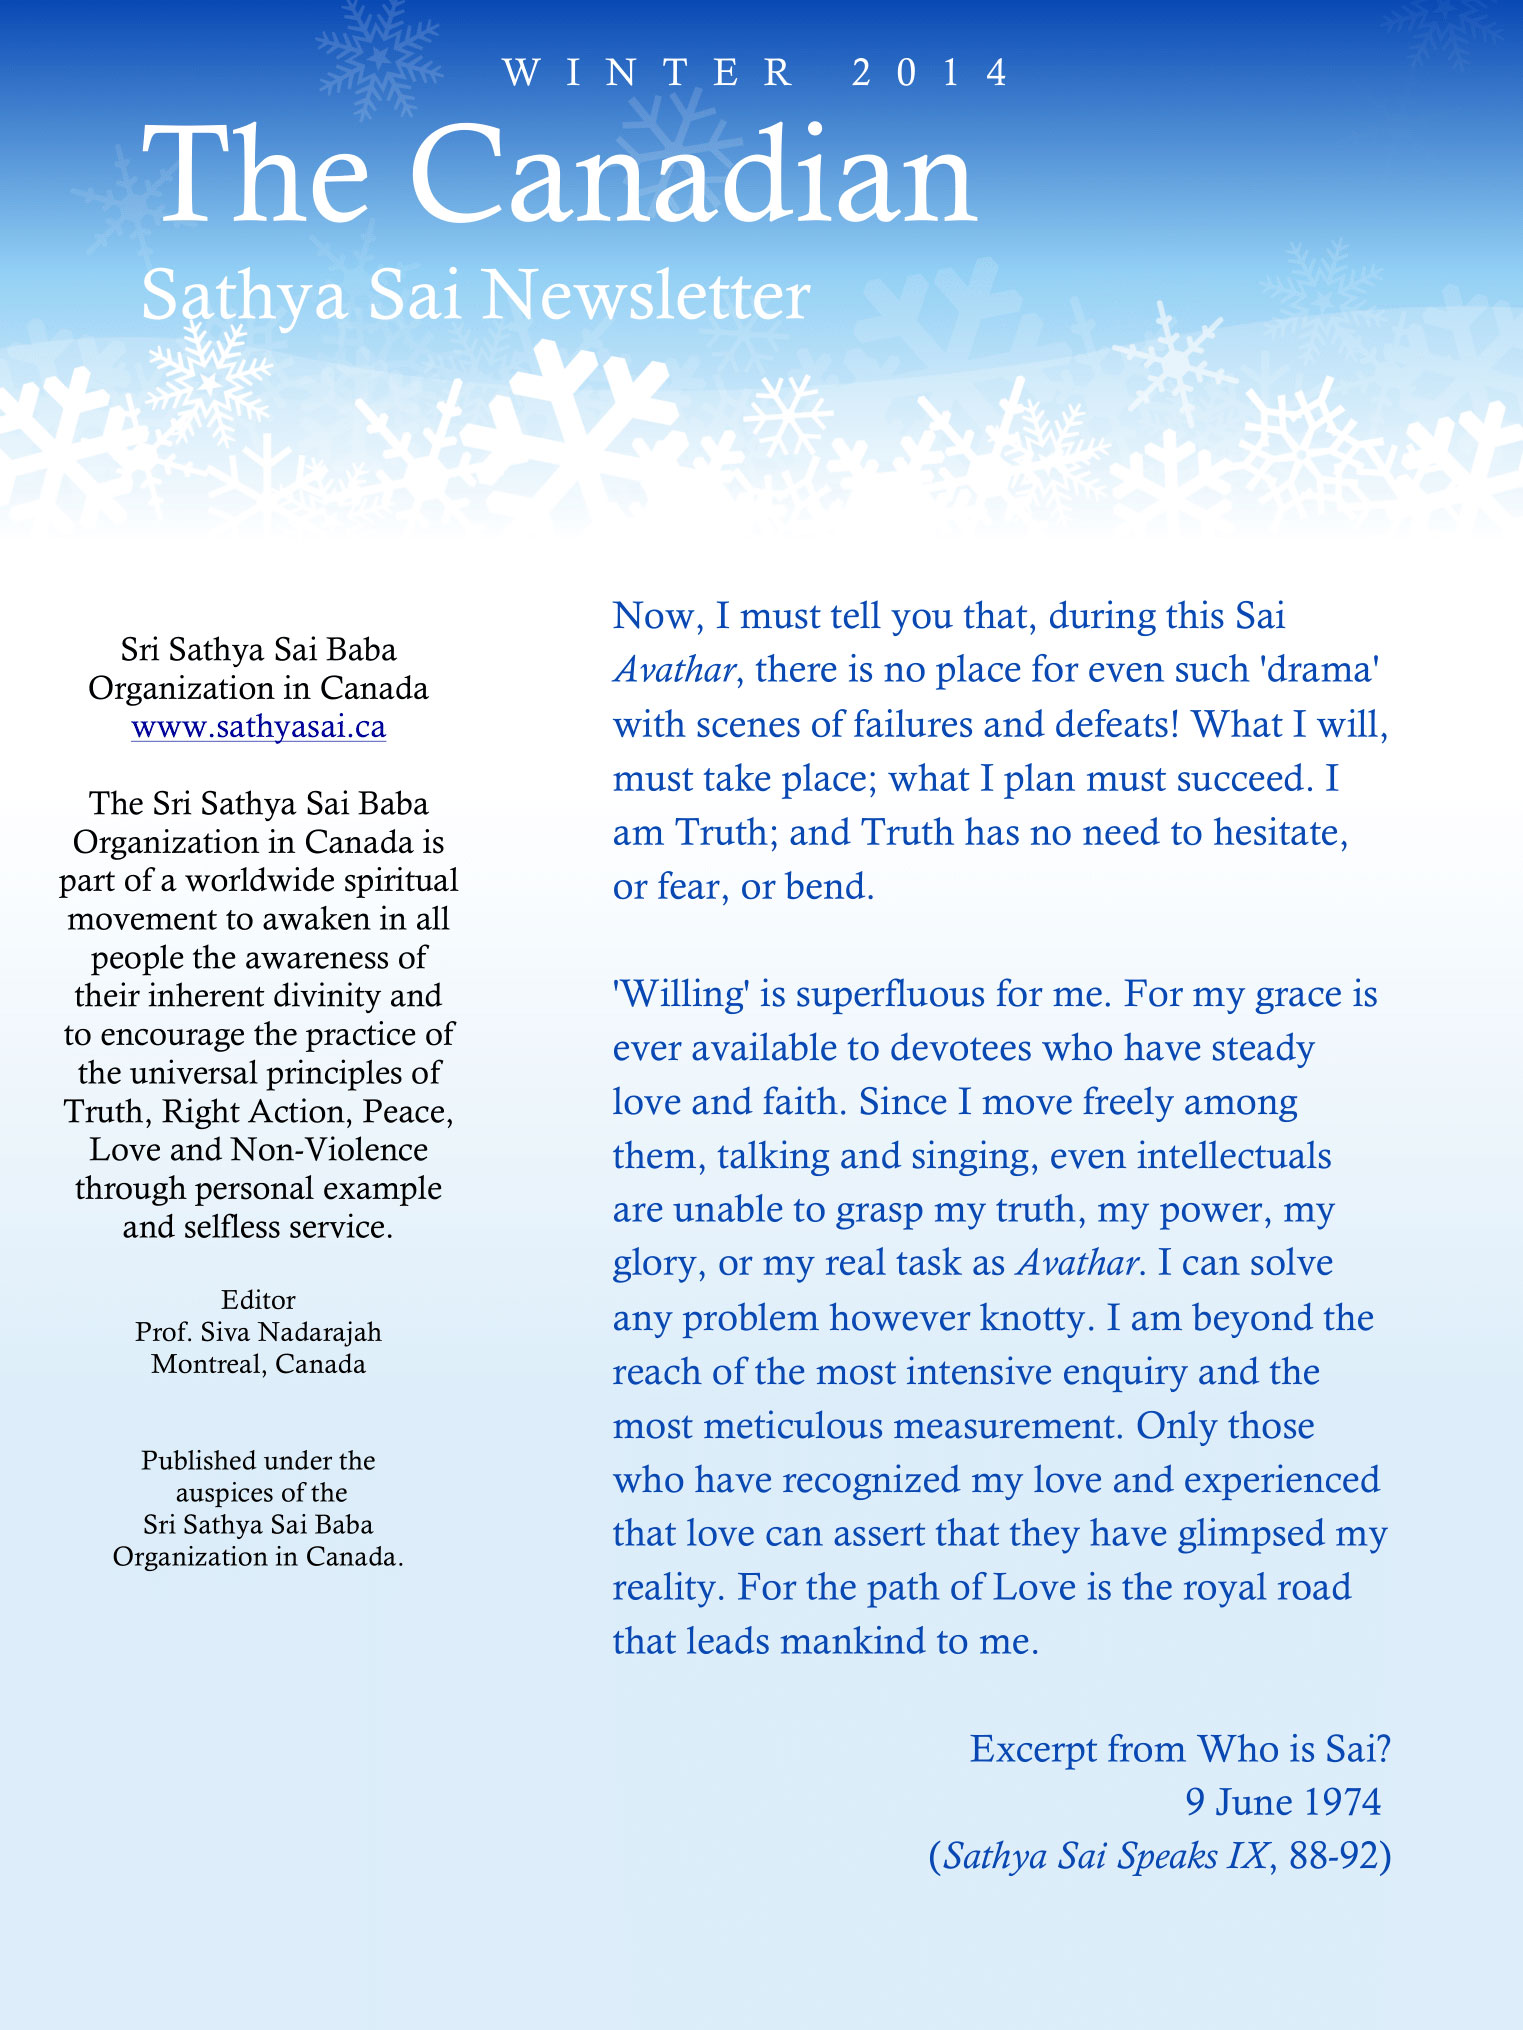 The Canadian Sathya Sai Magazine - Winter 2014